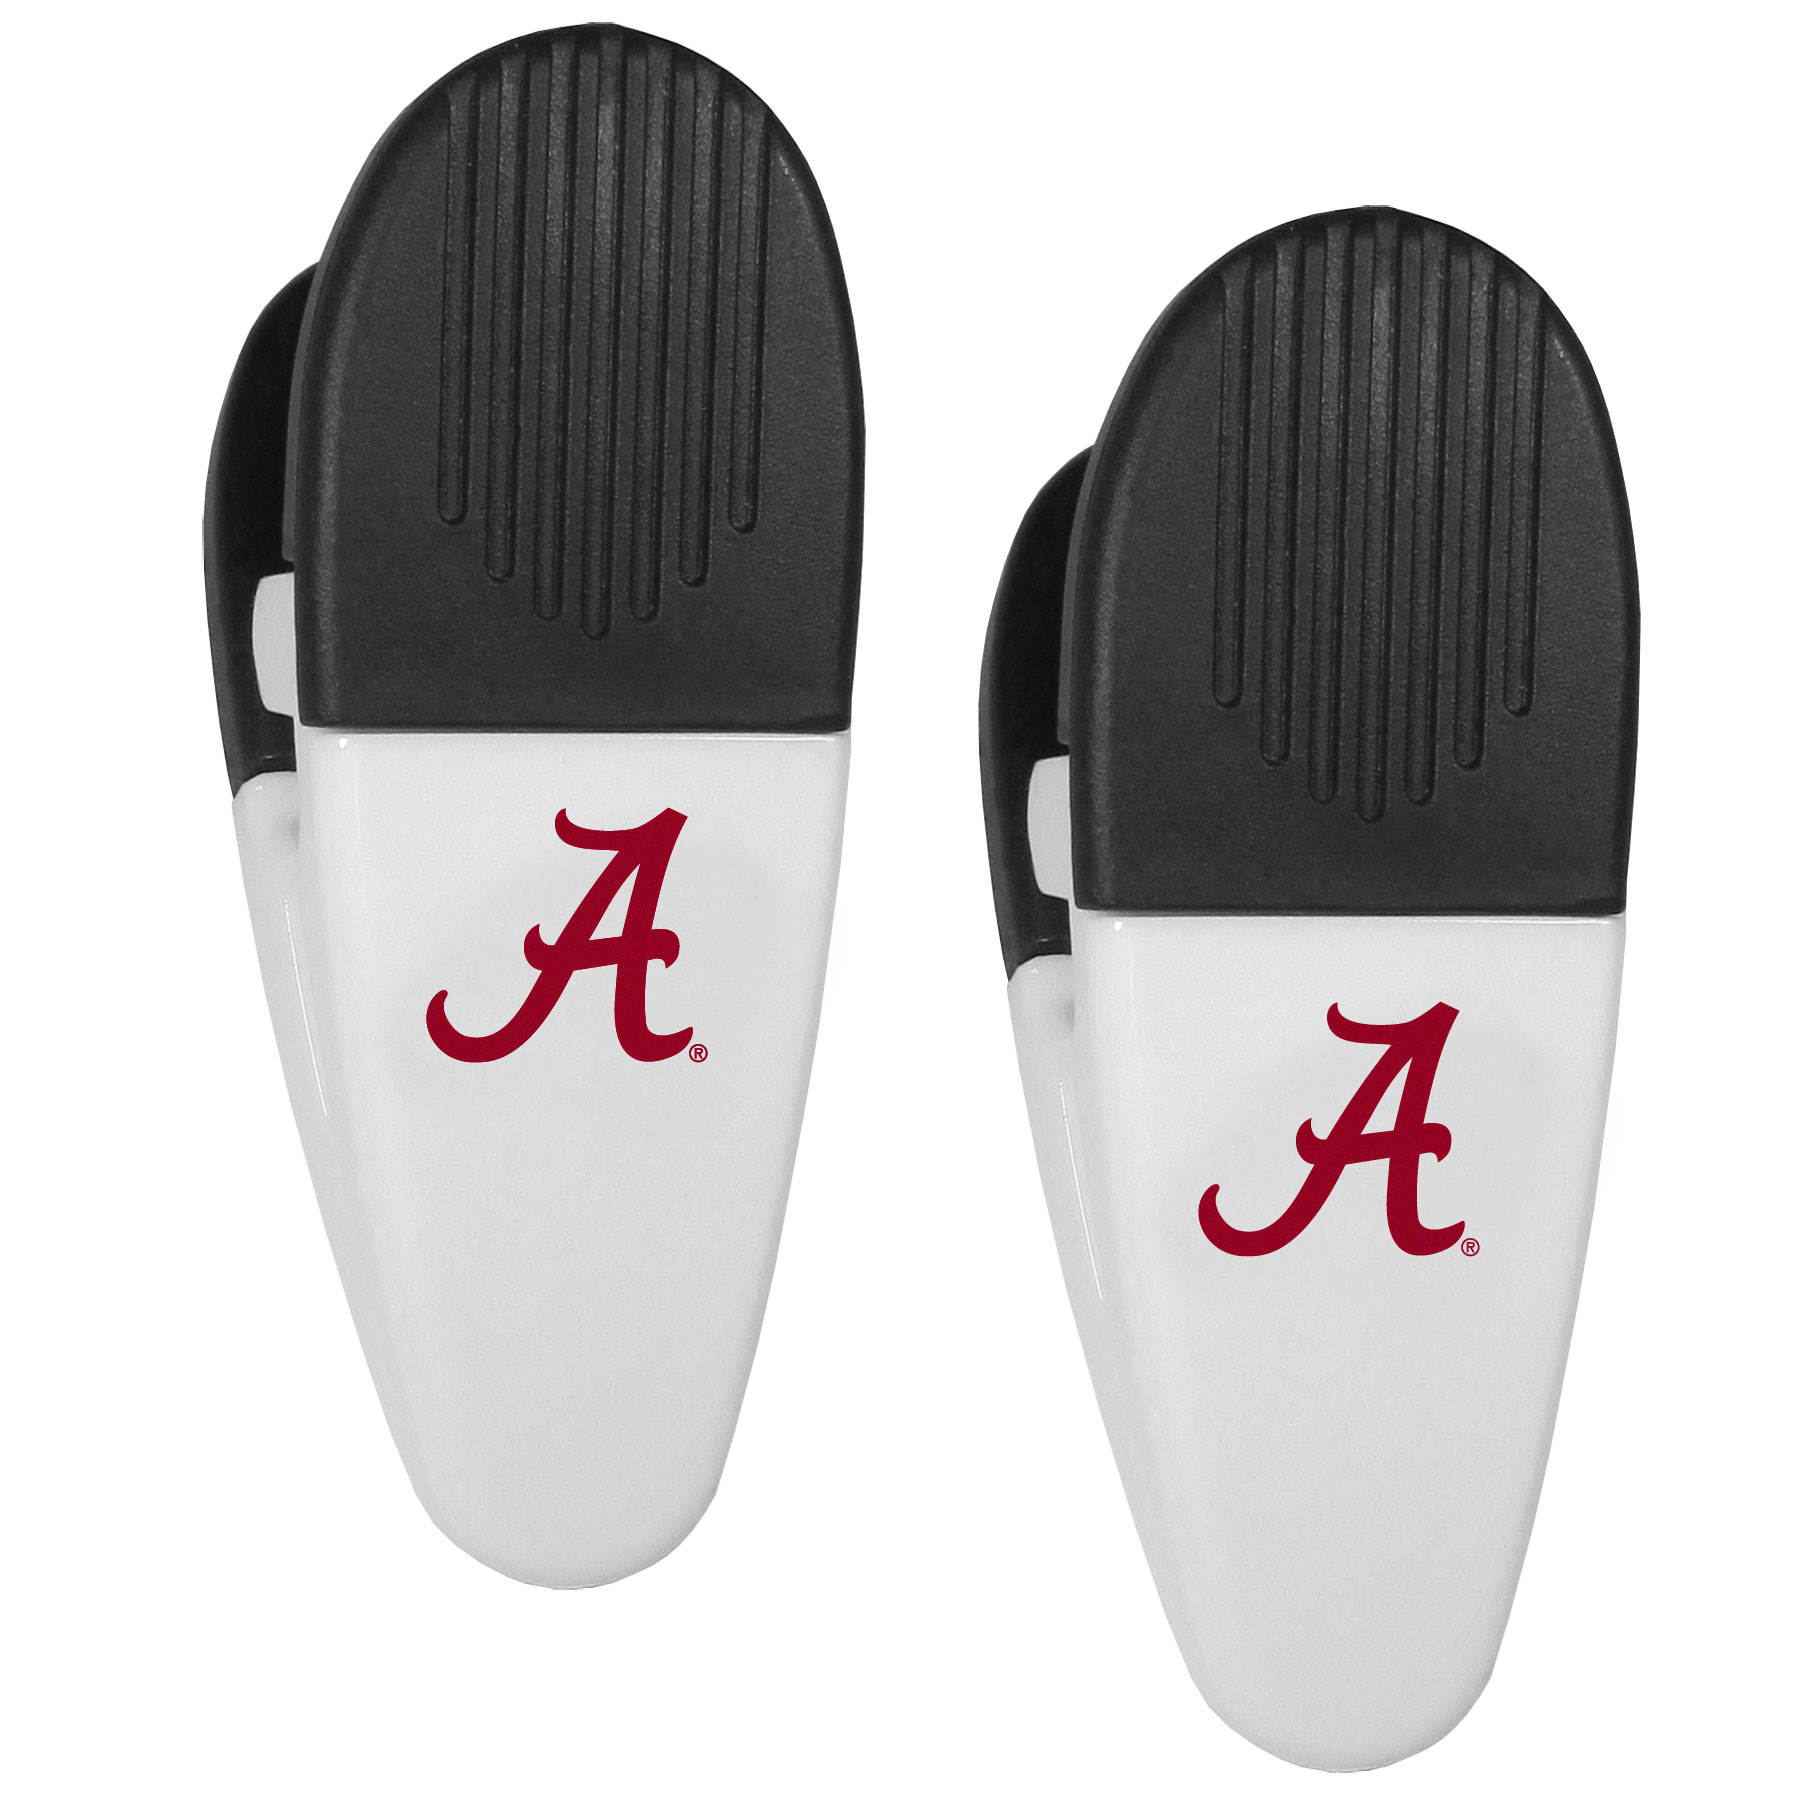 Alabama Crimson Tide Mini Chip Clip Magnets, 2 pk - Our Alabama Crimson Tide chip clip magnets feature a crisp team logo on the front of the clip. The clip is perfect for sealing chips for freshness and with the powerful magnet on the back it can be used to attach notes to the fridge or hanging your child's artwork. Set of 2 magnet clips, each clip is 3.5 inches tall and 1.25 inch wide.